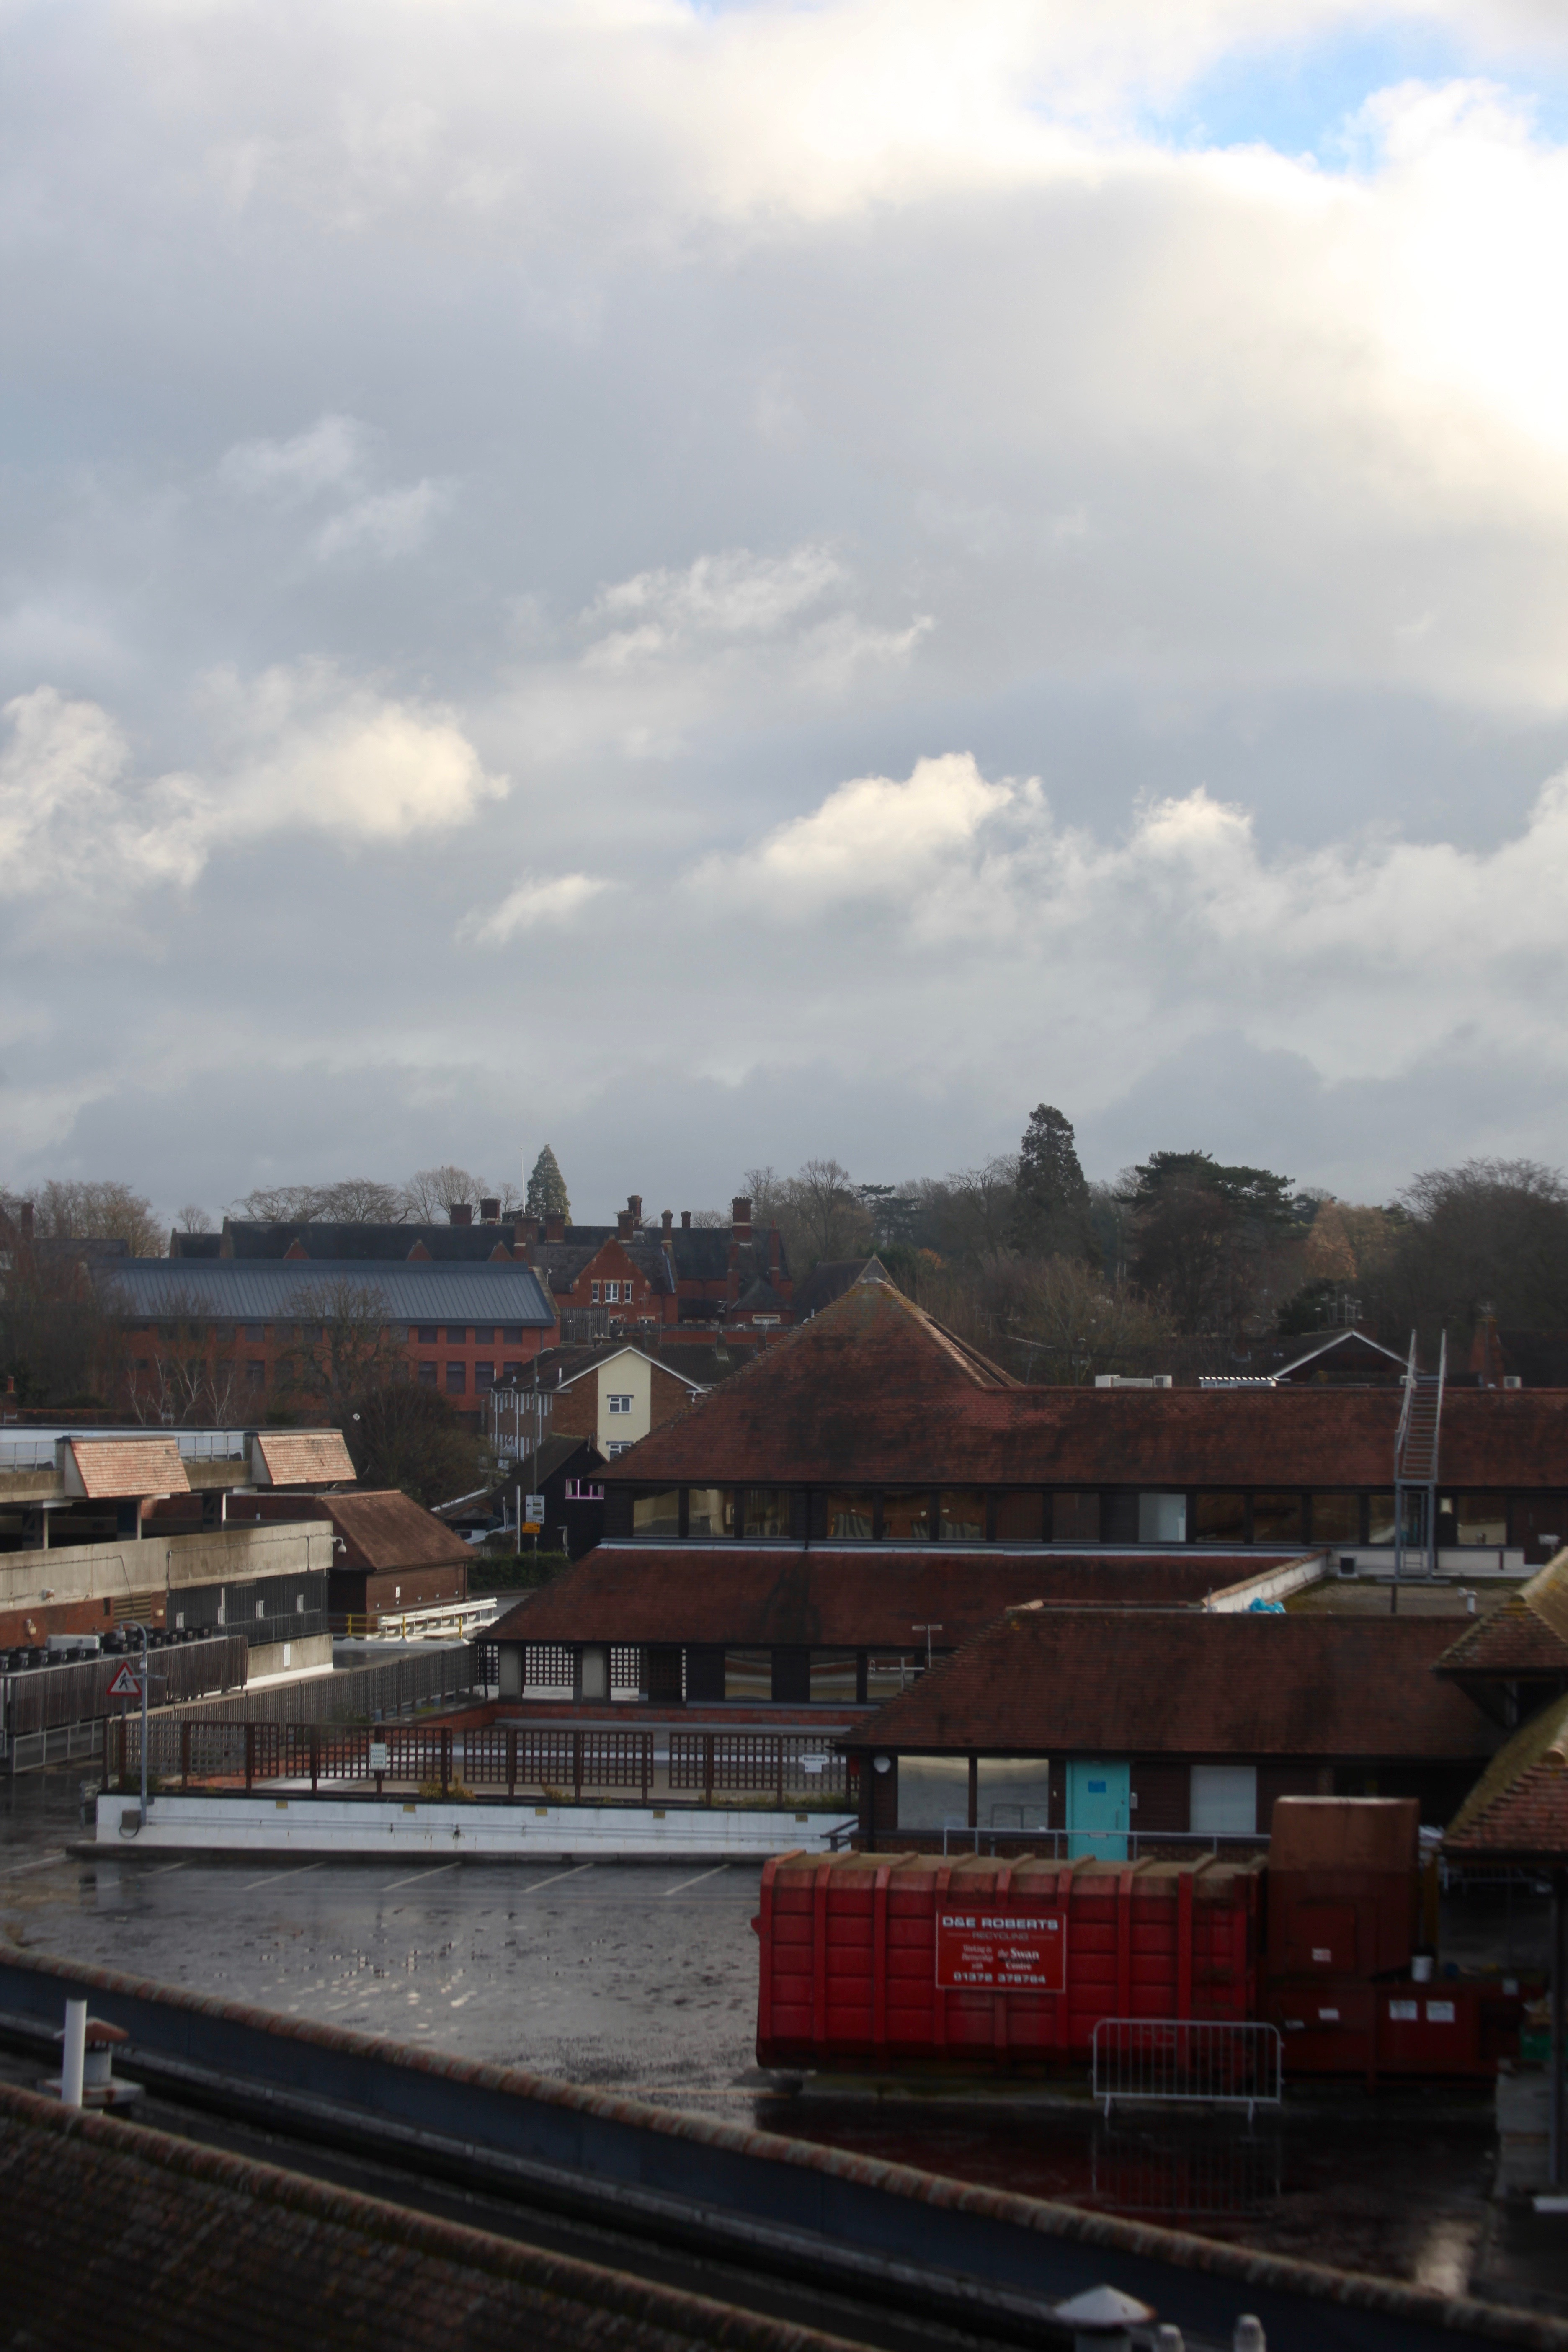 View from Travelodge window 1